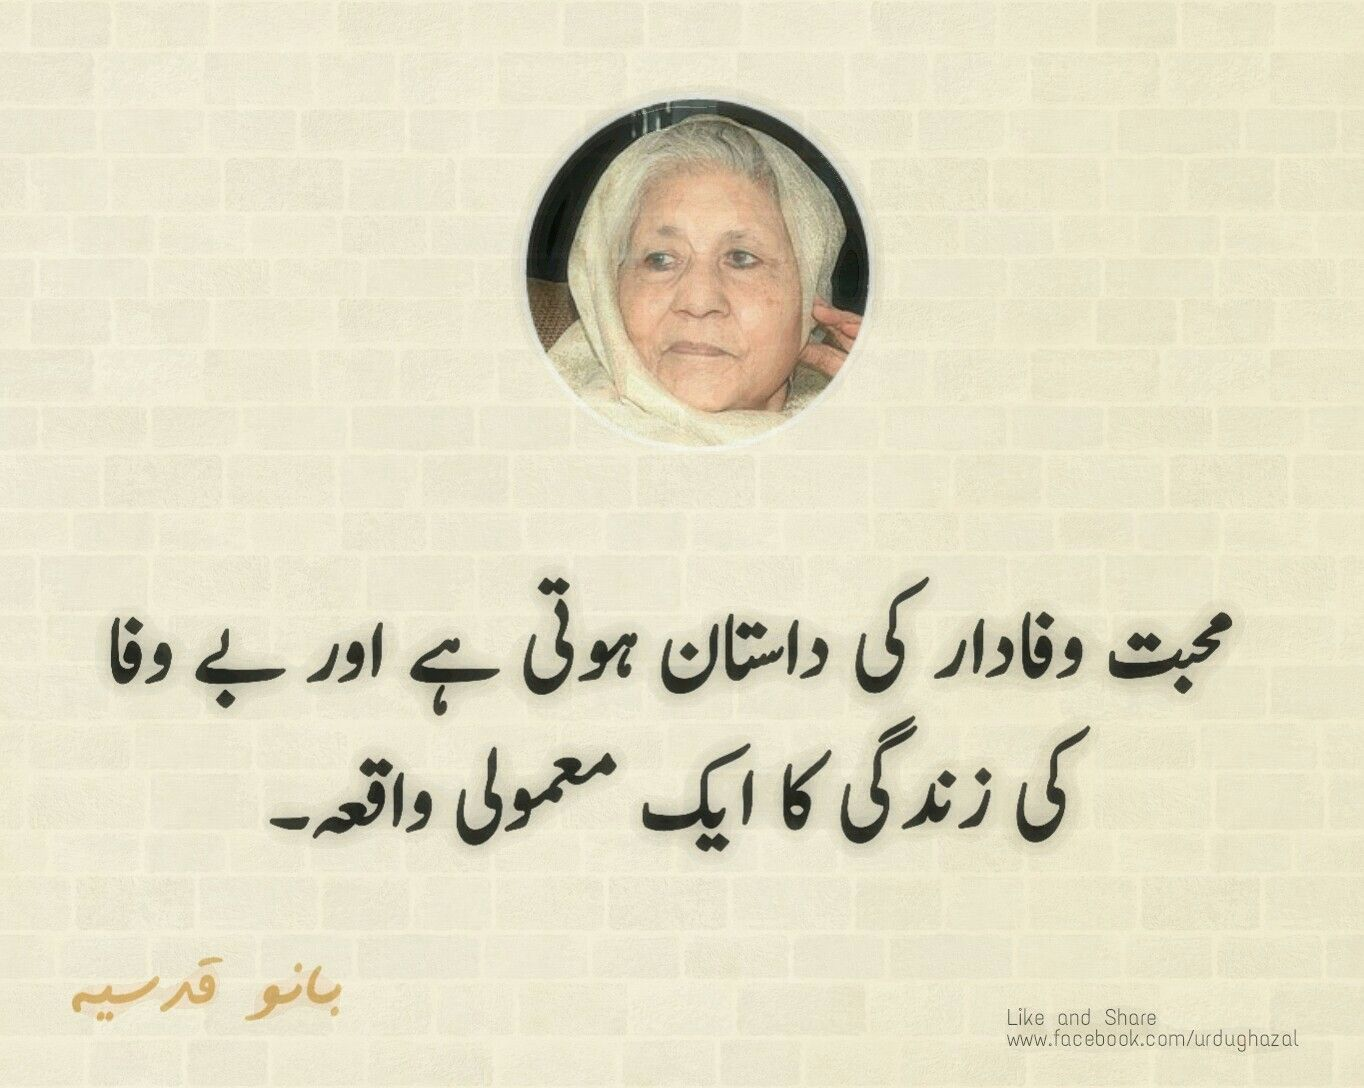 Bano Qudsia Dialogue Pin By Urdu Ghazal اردو غزل On Bano Qudsia Urdu Quotes Poetry